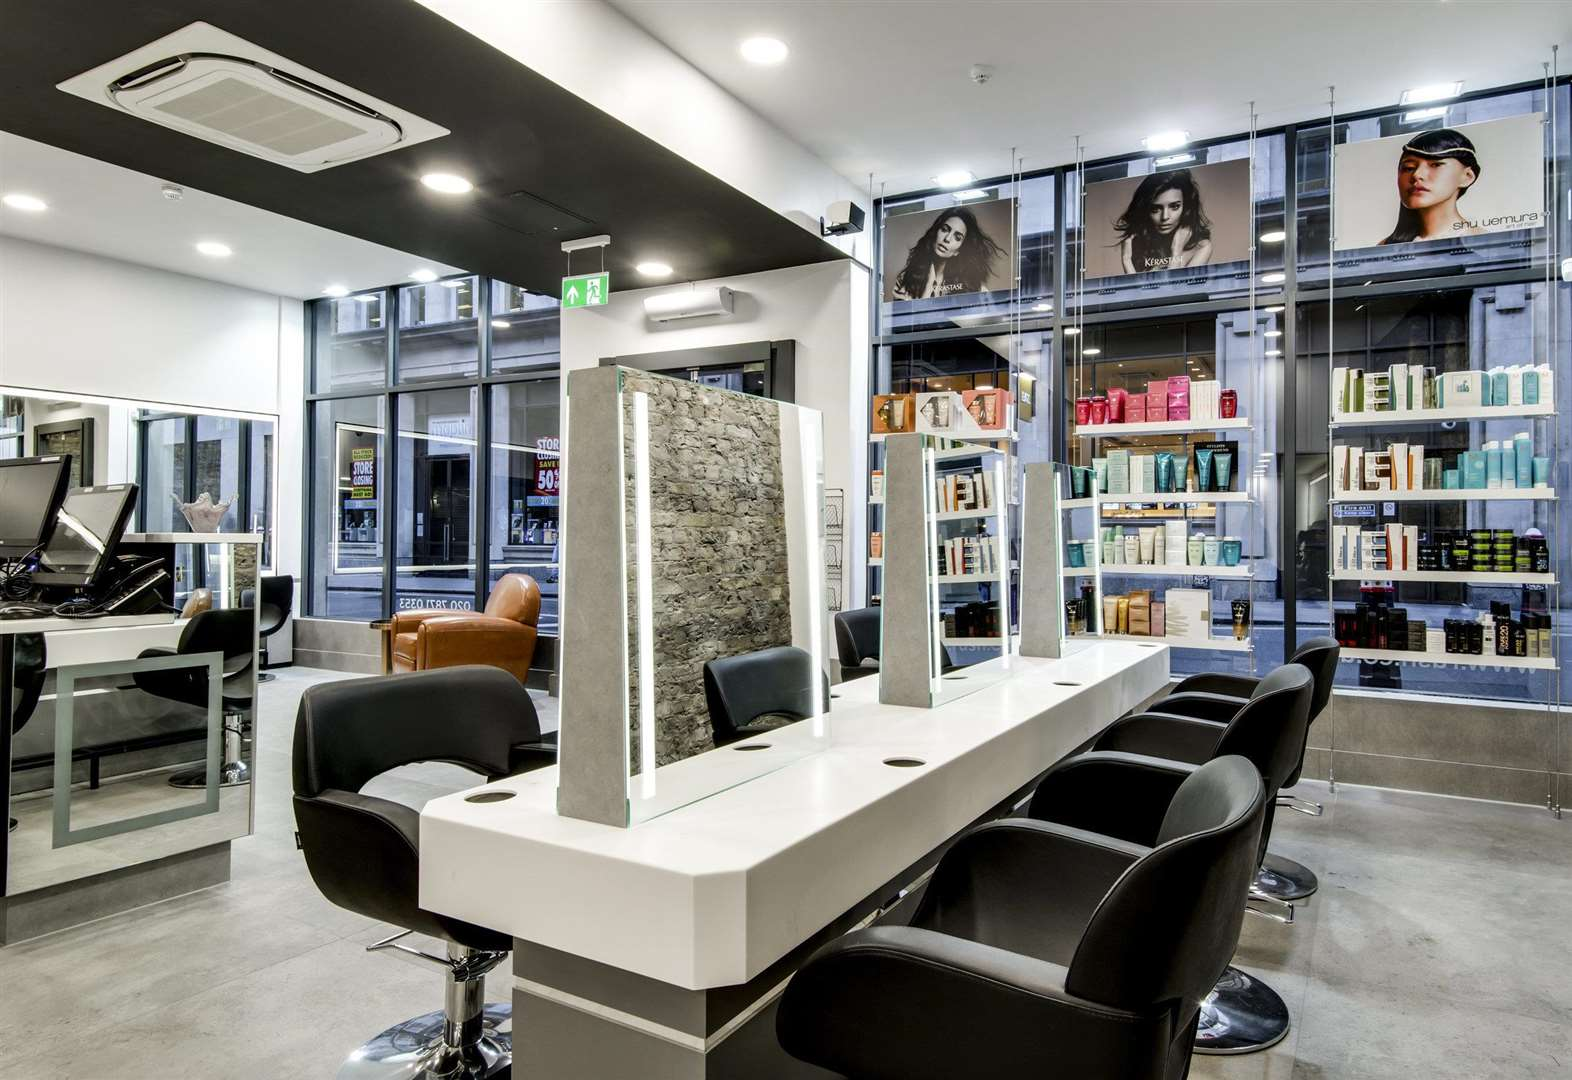 Top salon moves out of town centre mall